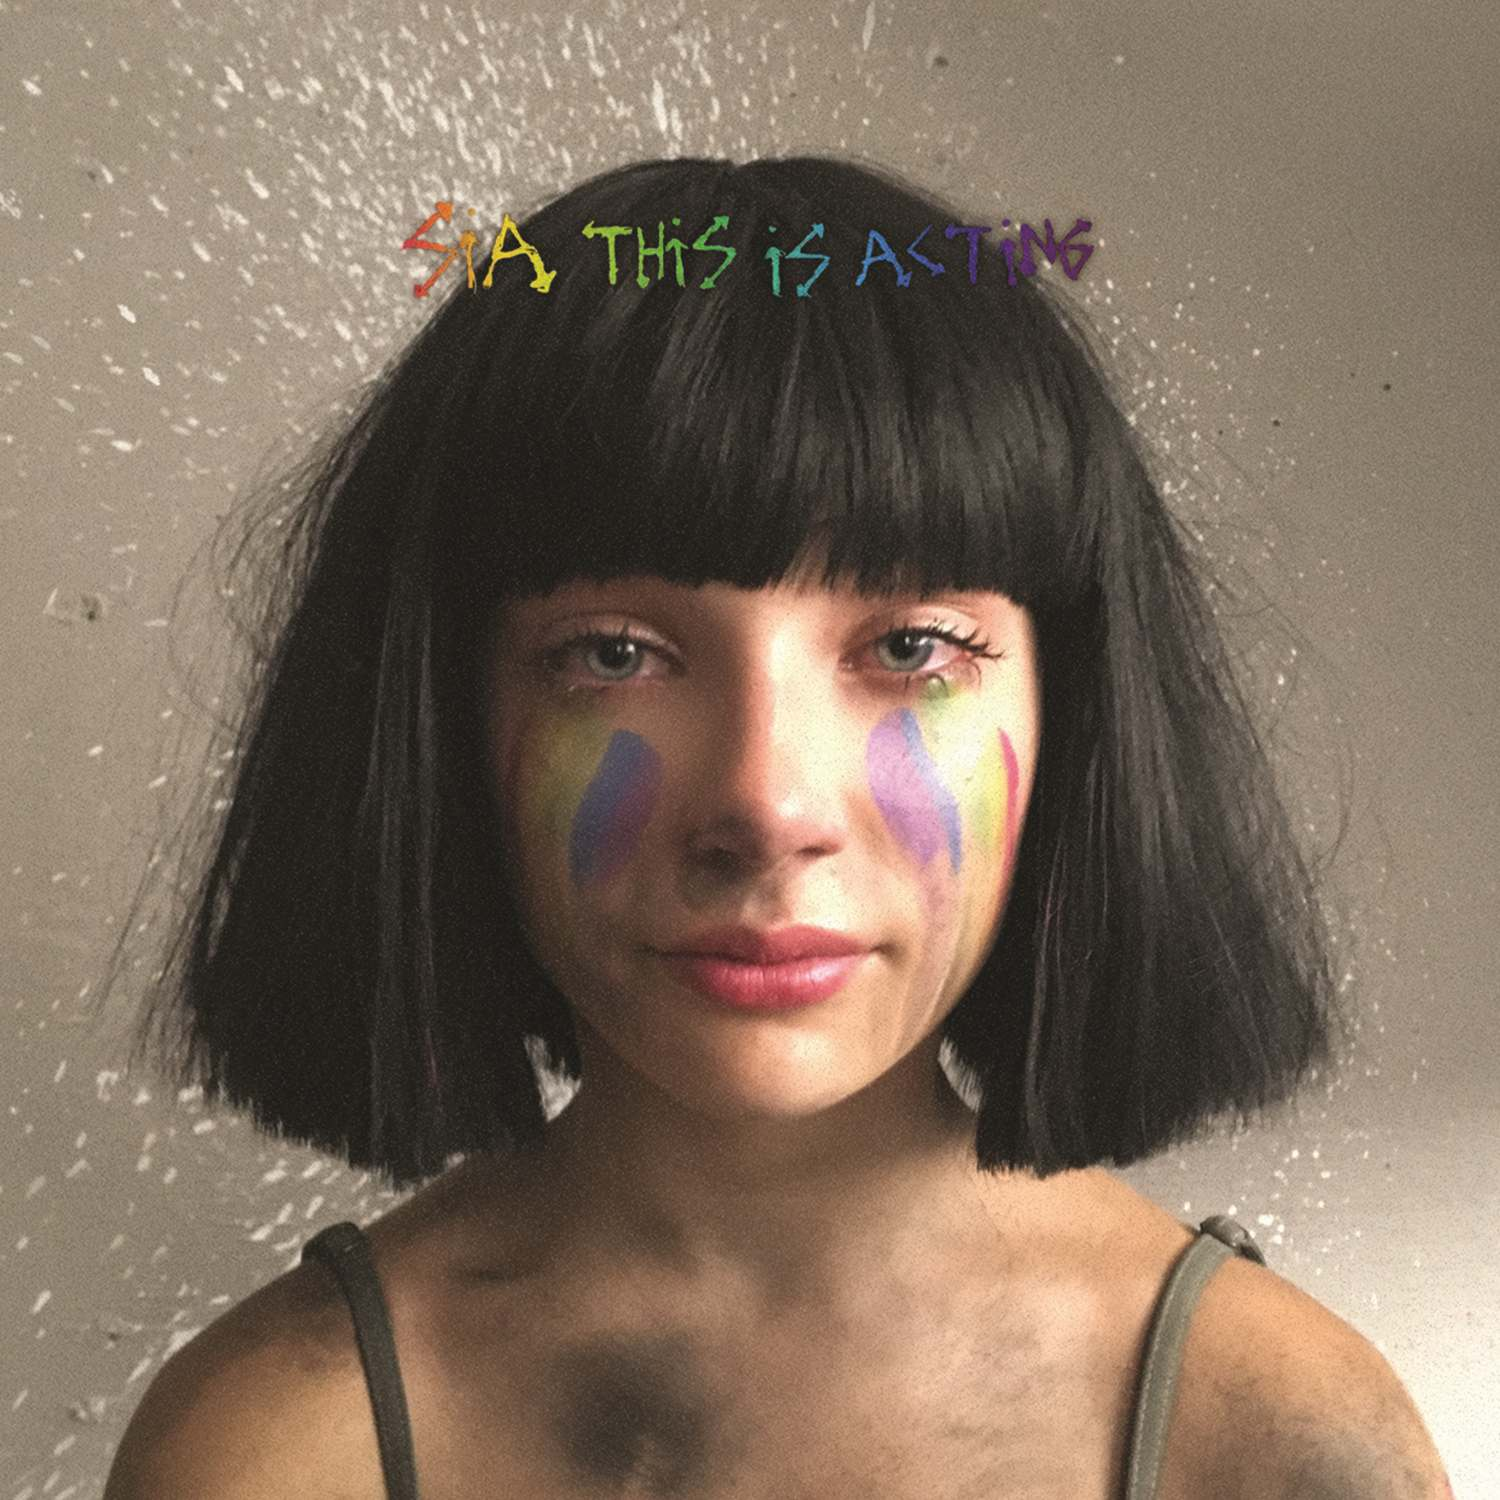 SIA This Is Acting deluxe album cover small